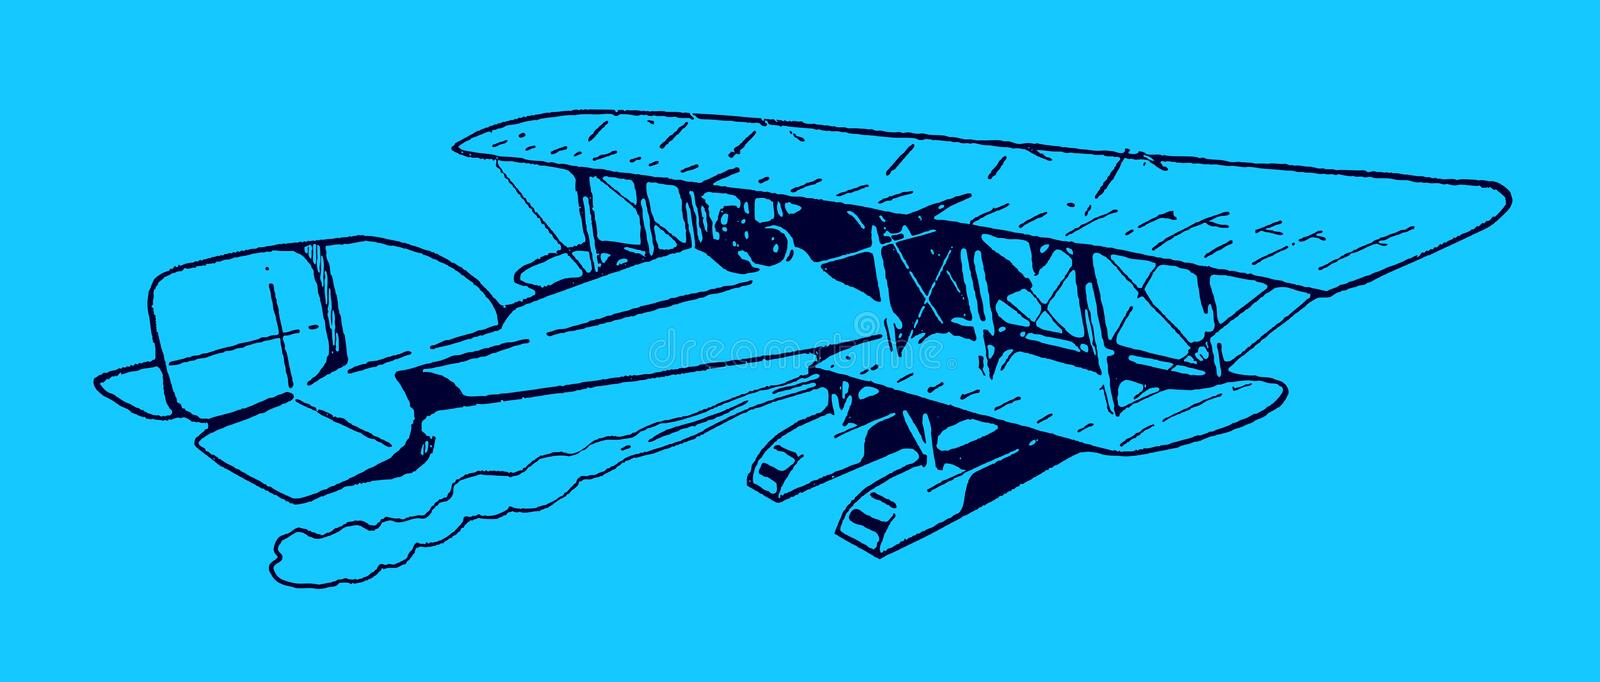 Historical biplane seaplane flying away. Illustration on a blue background after a lithography from the early 20th century. Editable in layers vector illustration